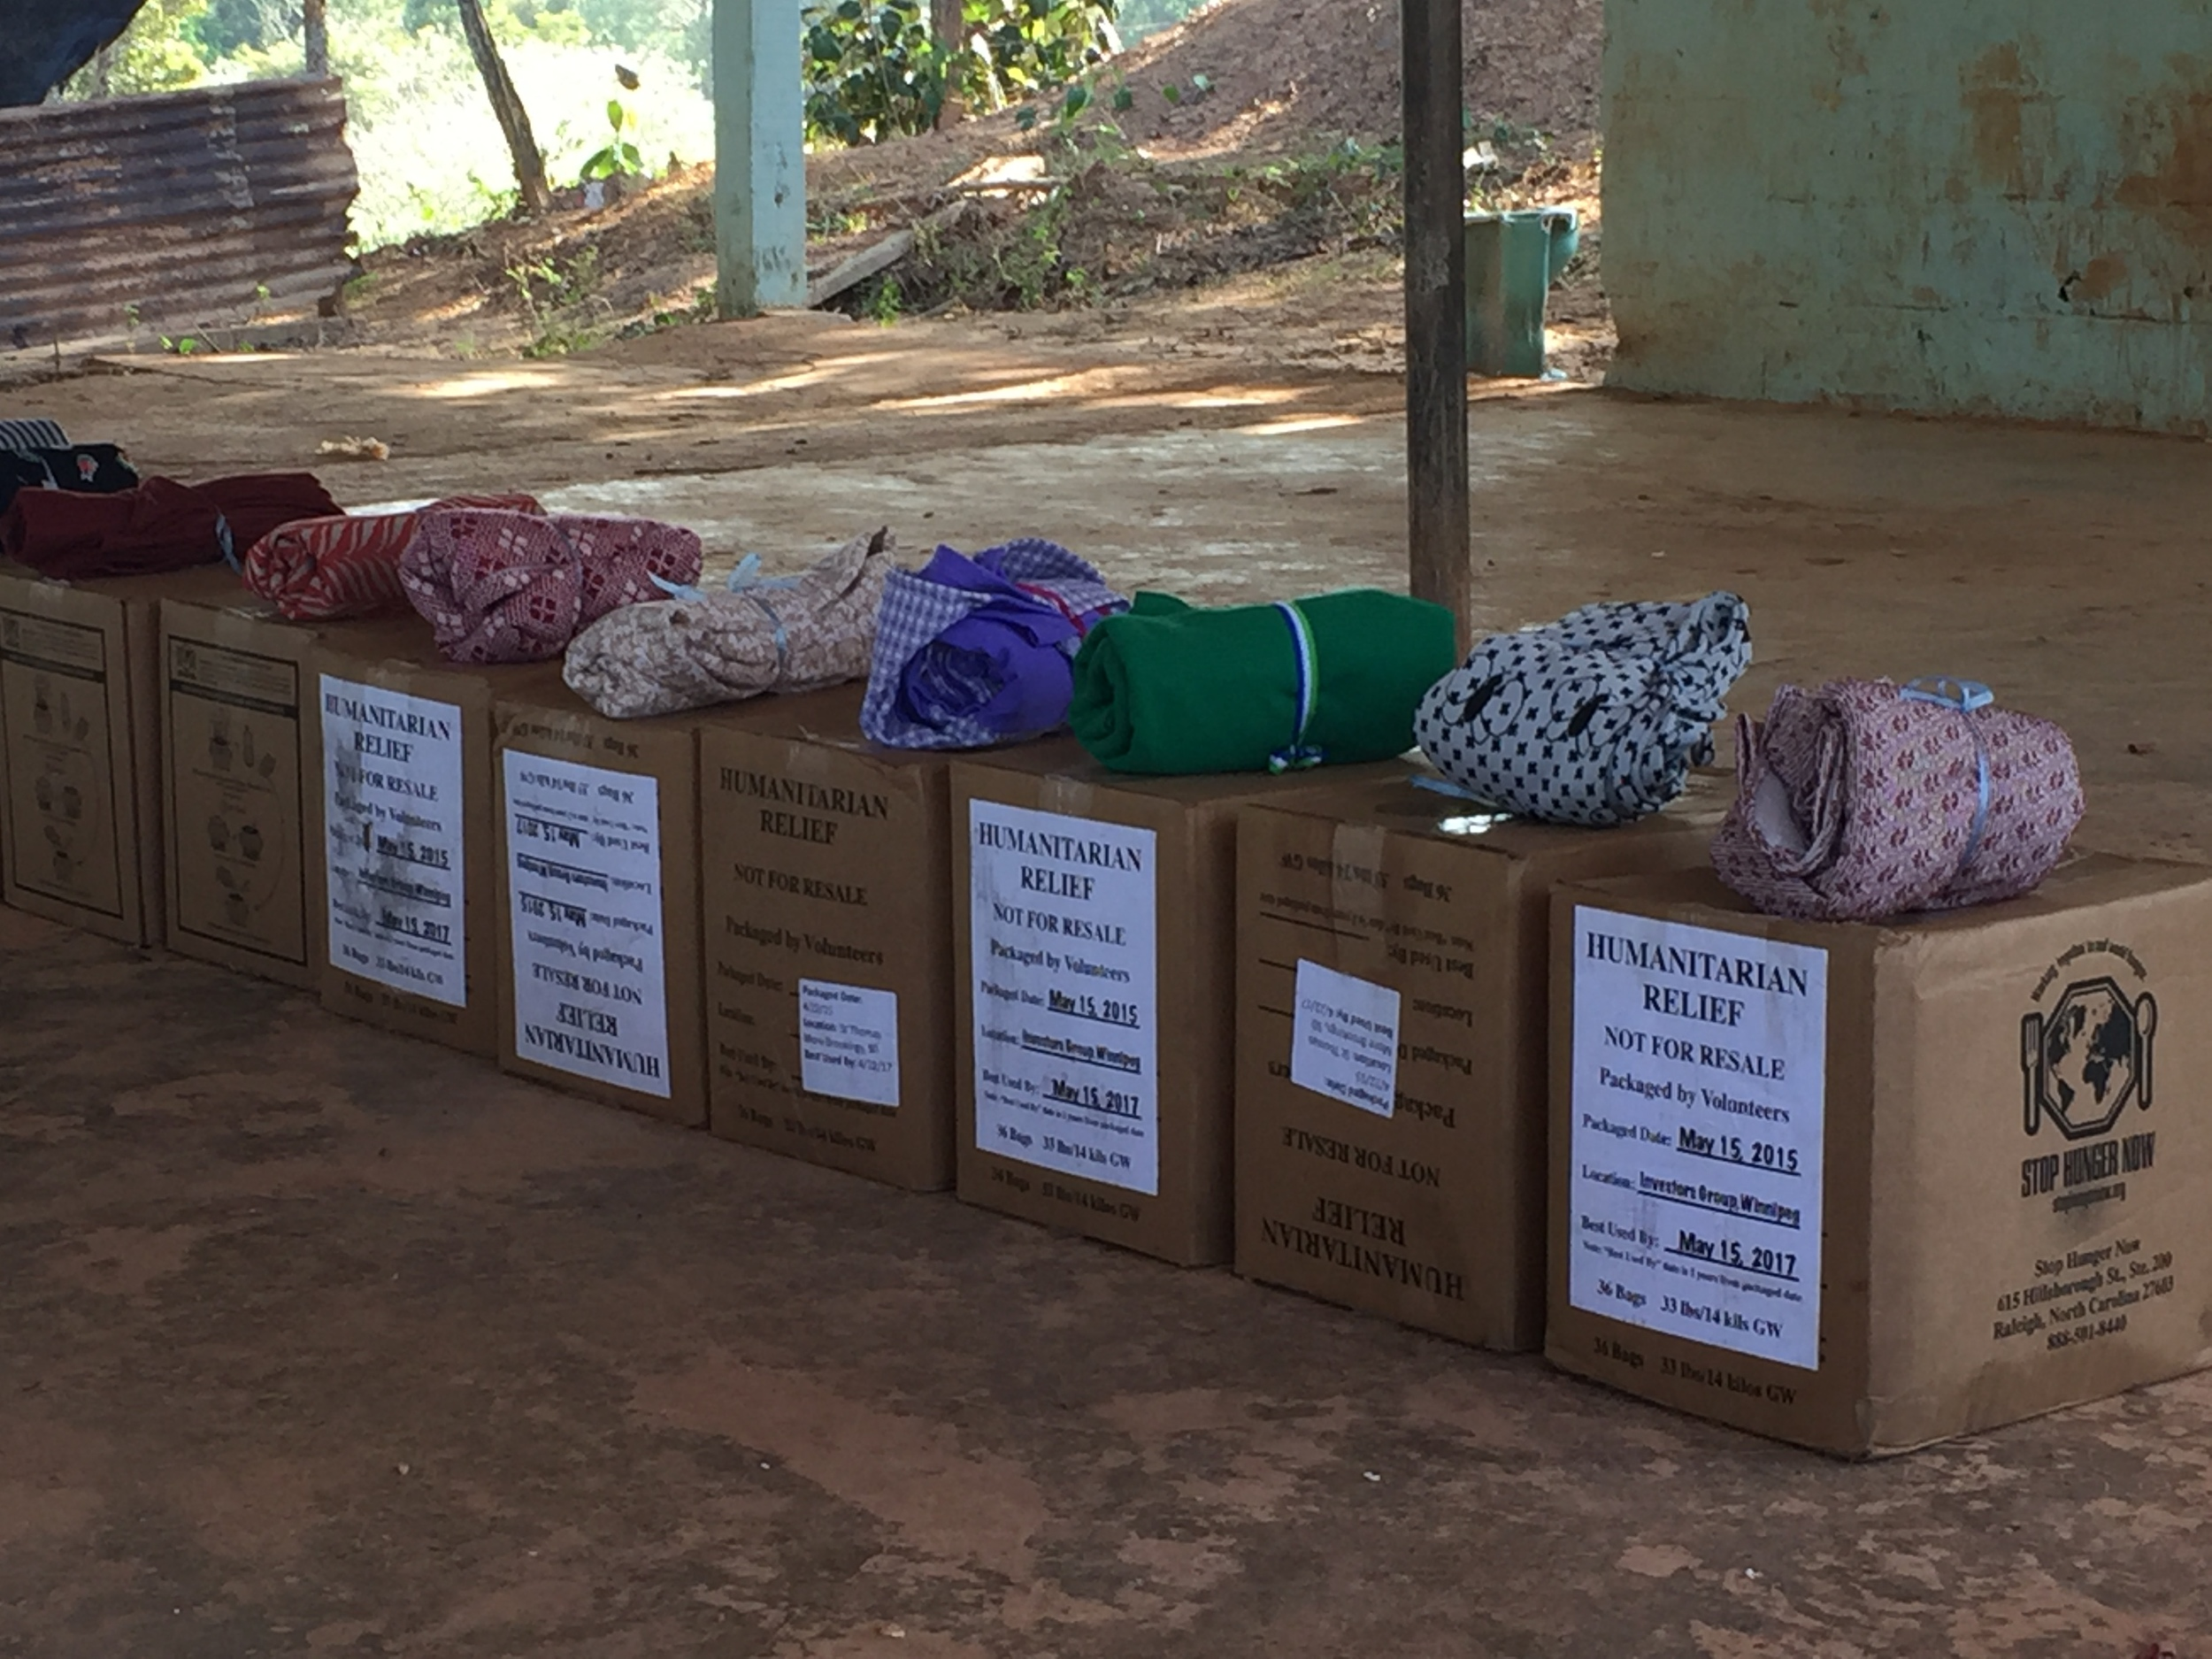 Delivering food and water filters to families in Unicito community. The cloth bundles on top are covers for the water filter so that the spigot has less chance of contamination.